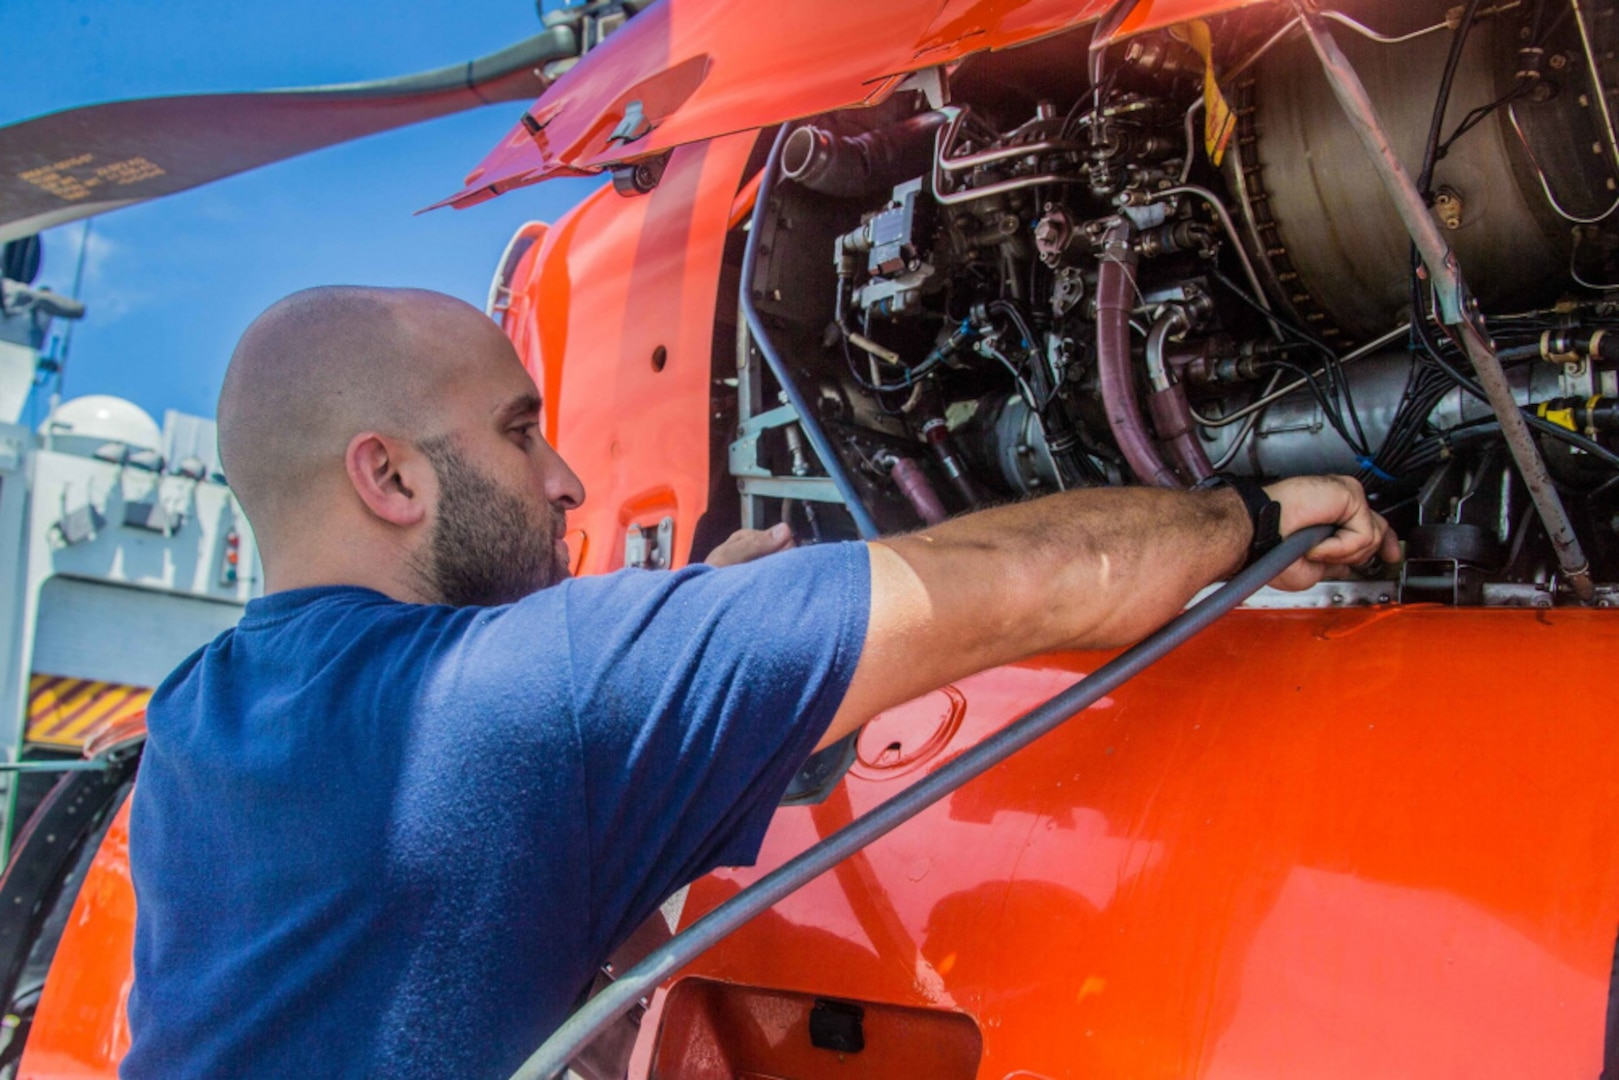 Petty Officer 2nd Class Michael El-Hasan, originally from Jacksonville, Florida, is an Aviation Maintenance Technician and has been aboard USCGC Hamilton (WMSL 753) for three months as part of the cutter's aviation detachment. (U.S. Coast Guard courtesy photo)